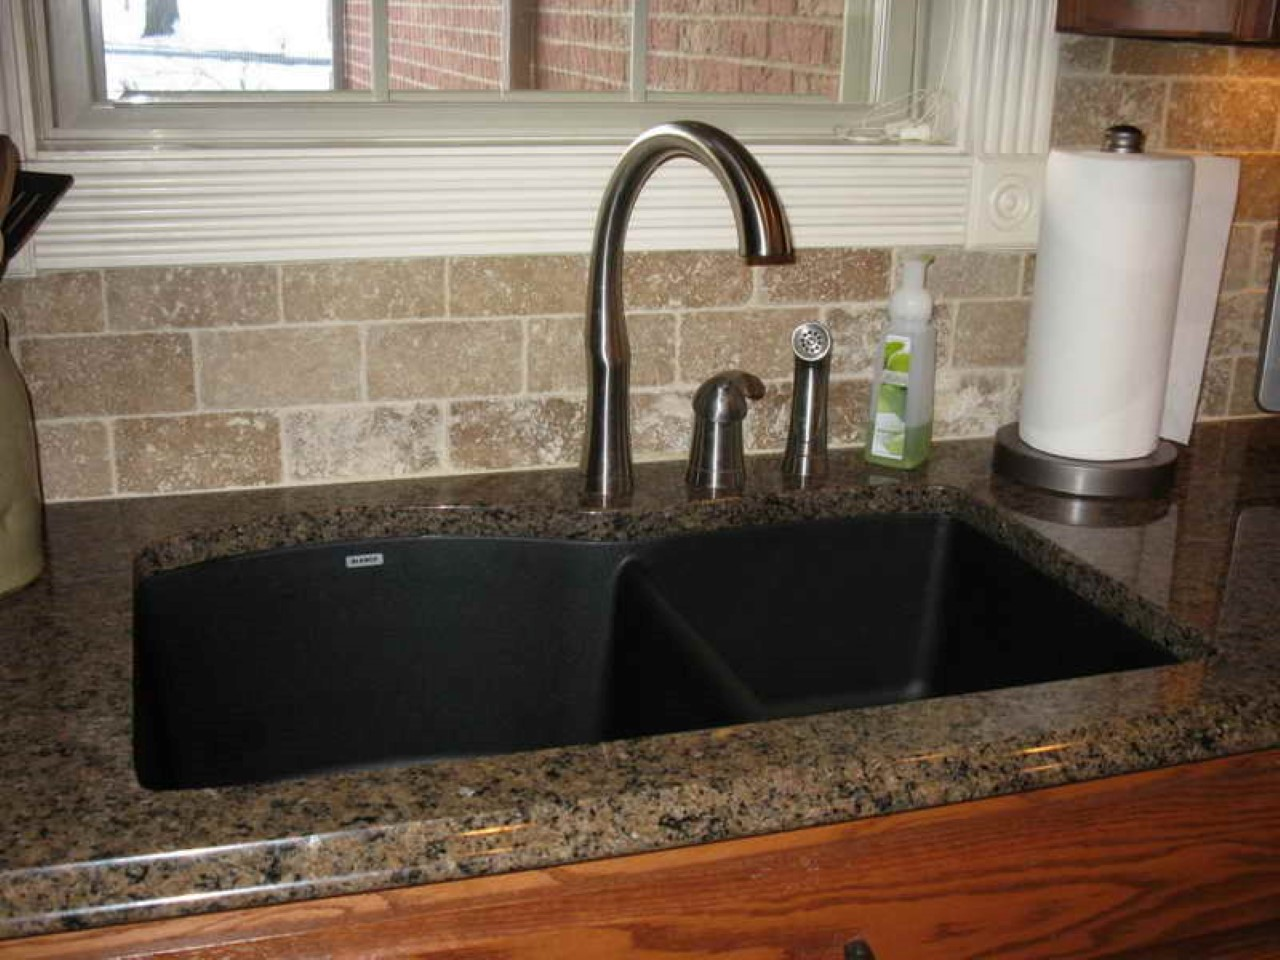 tissue-holder-on-elegant-granite-countertop-plus-subway-backsplash-tile-and-clever-black-kitchen-sink